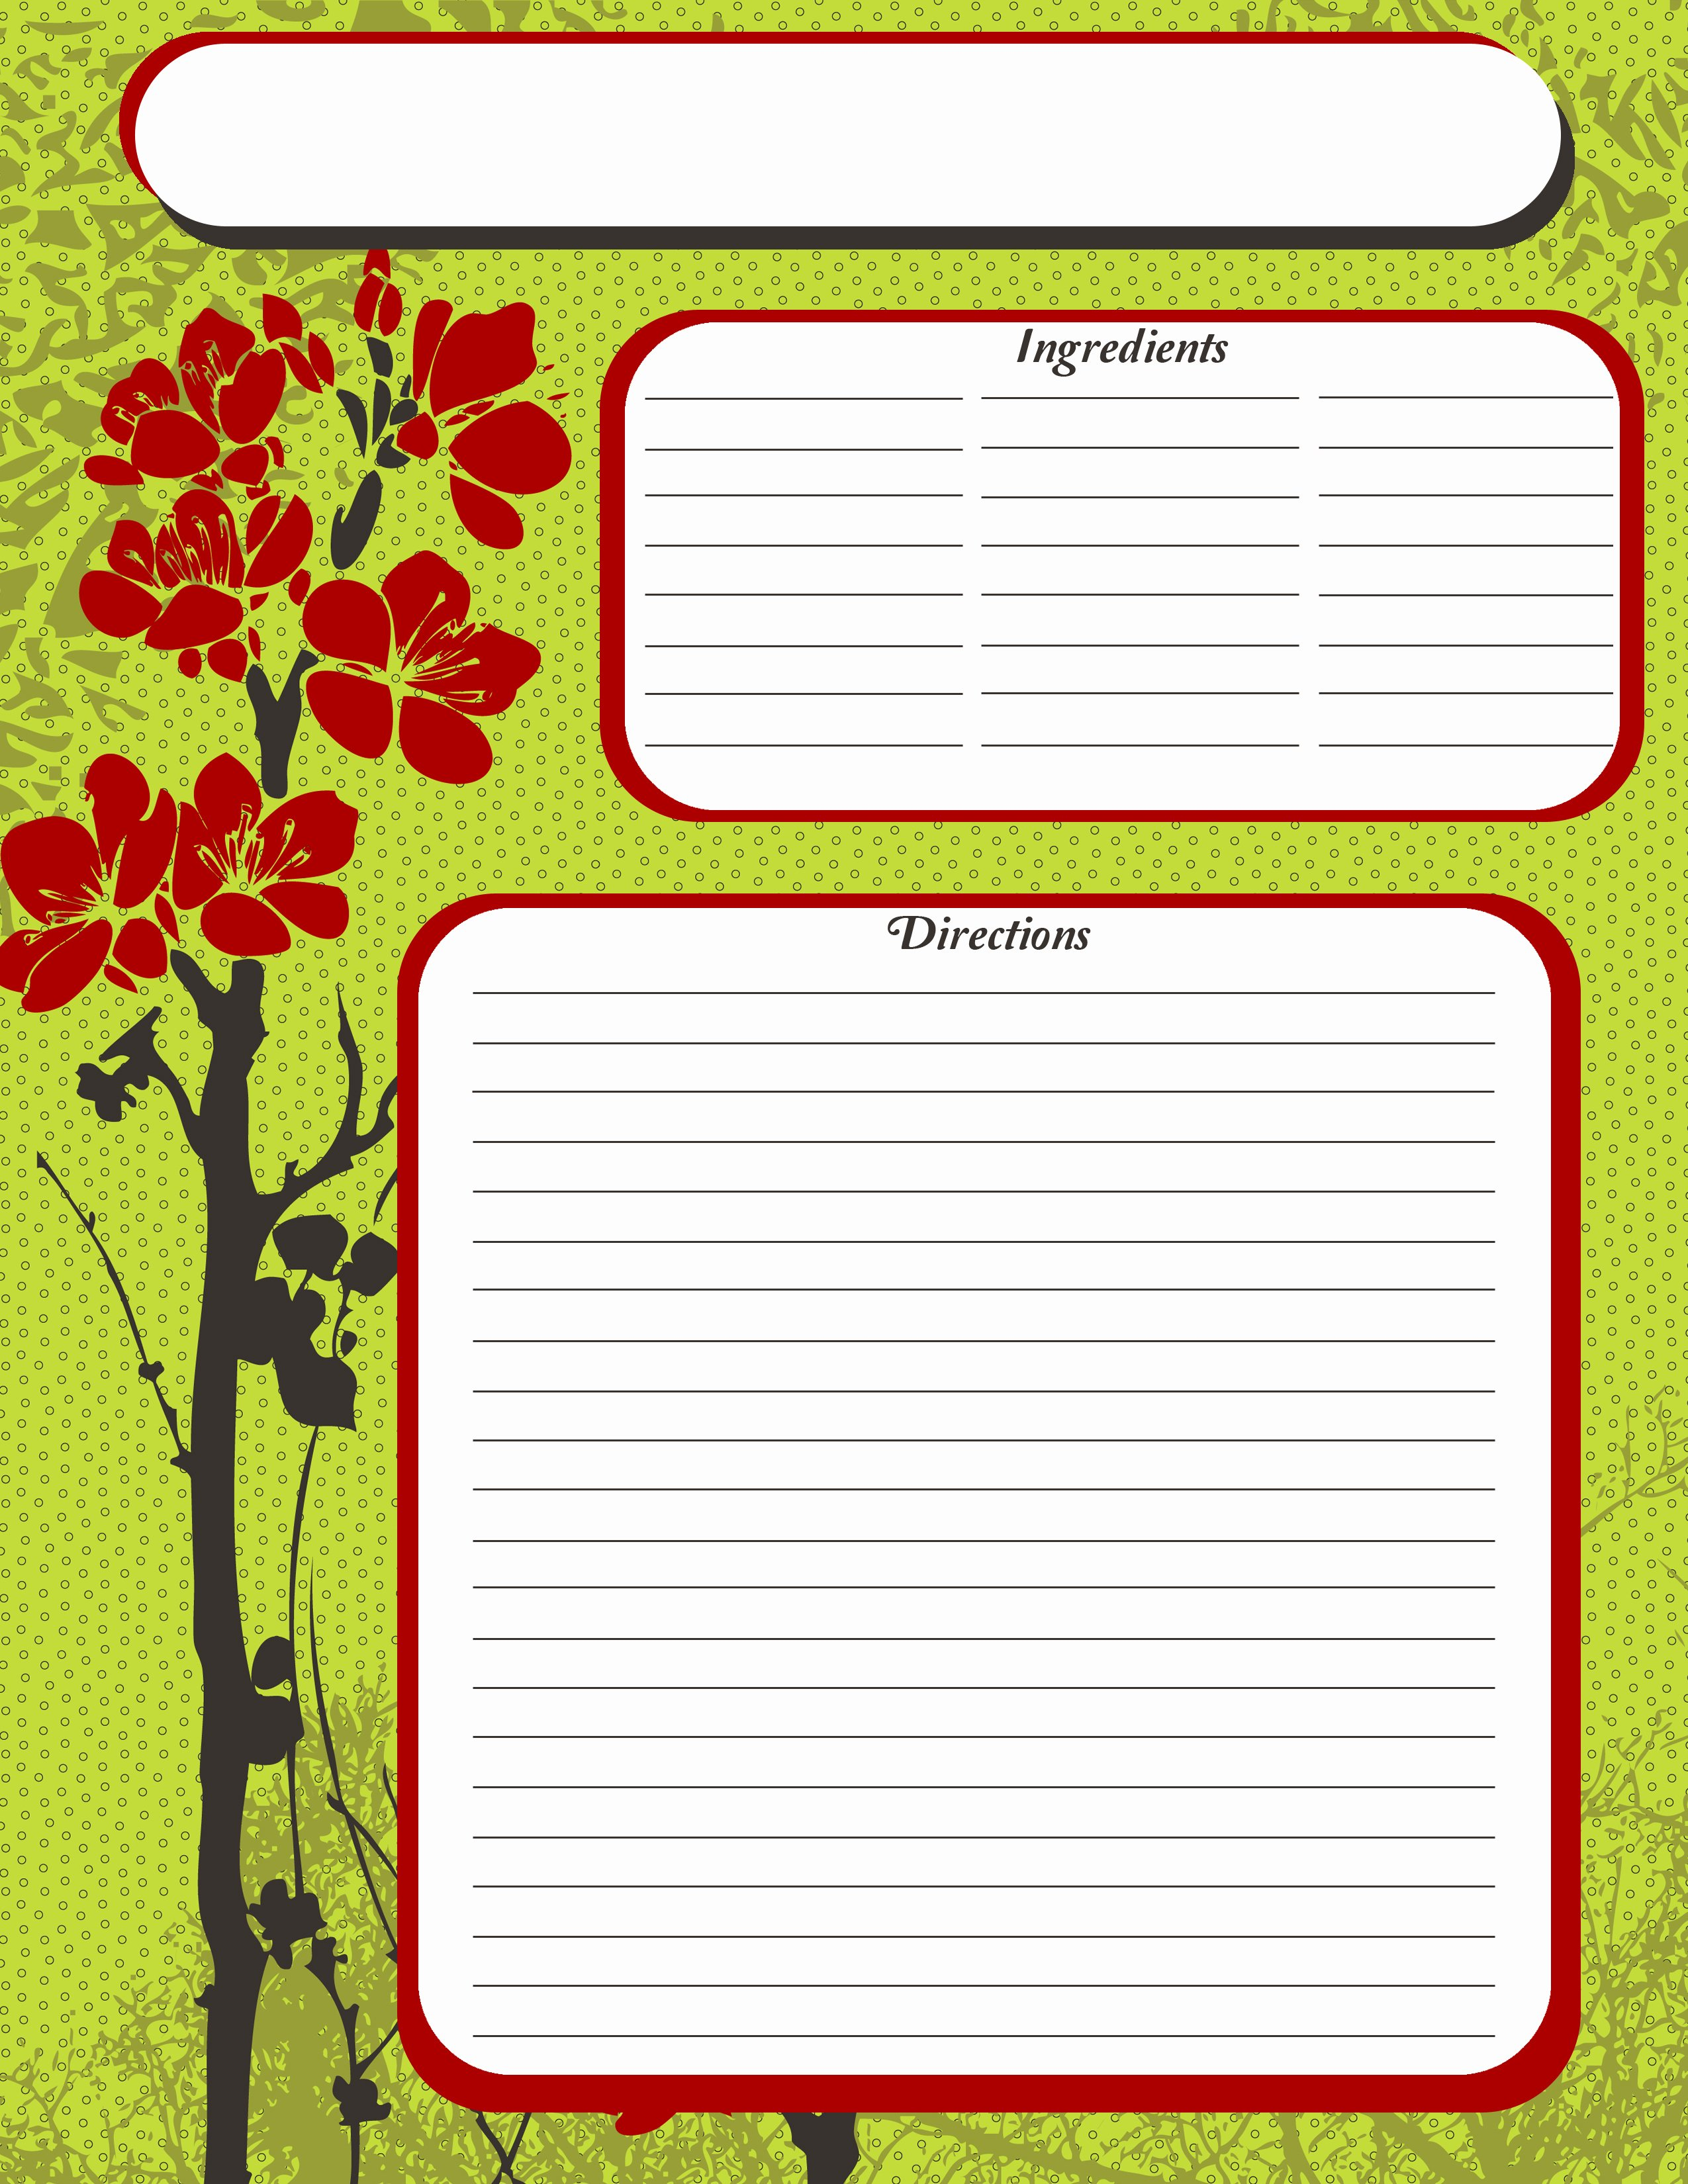 Full Page Recipe Template Inspirational Recipe Cards Pages and A Few Extras